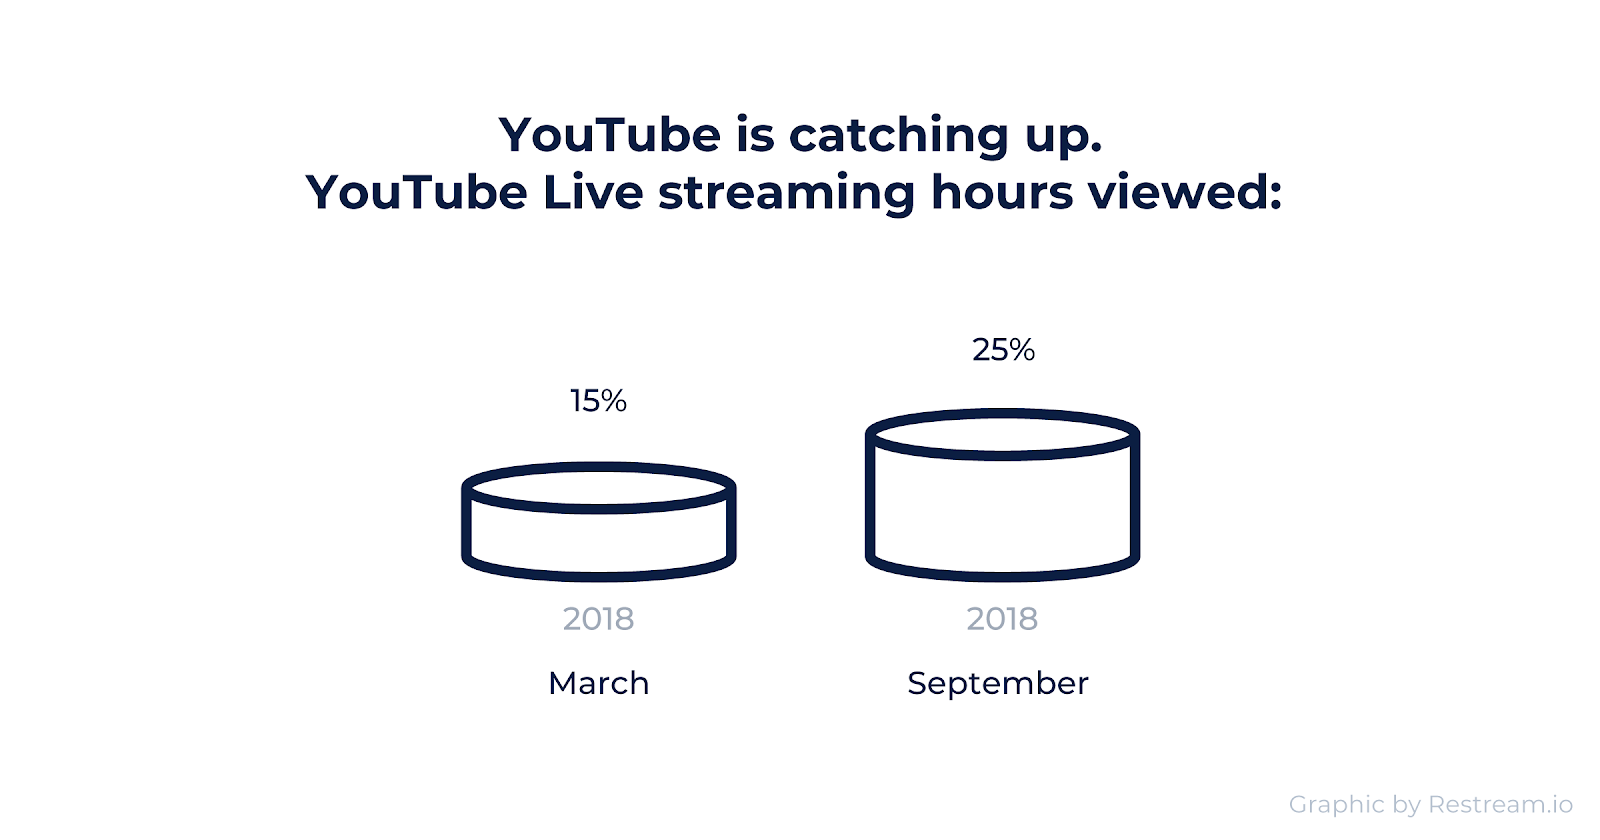 YouTube Live streaming hours is 15% in March 2018 and 25% in September 2018